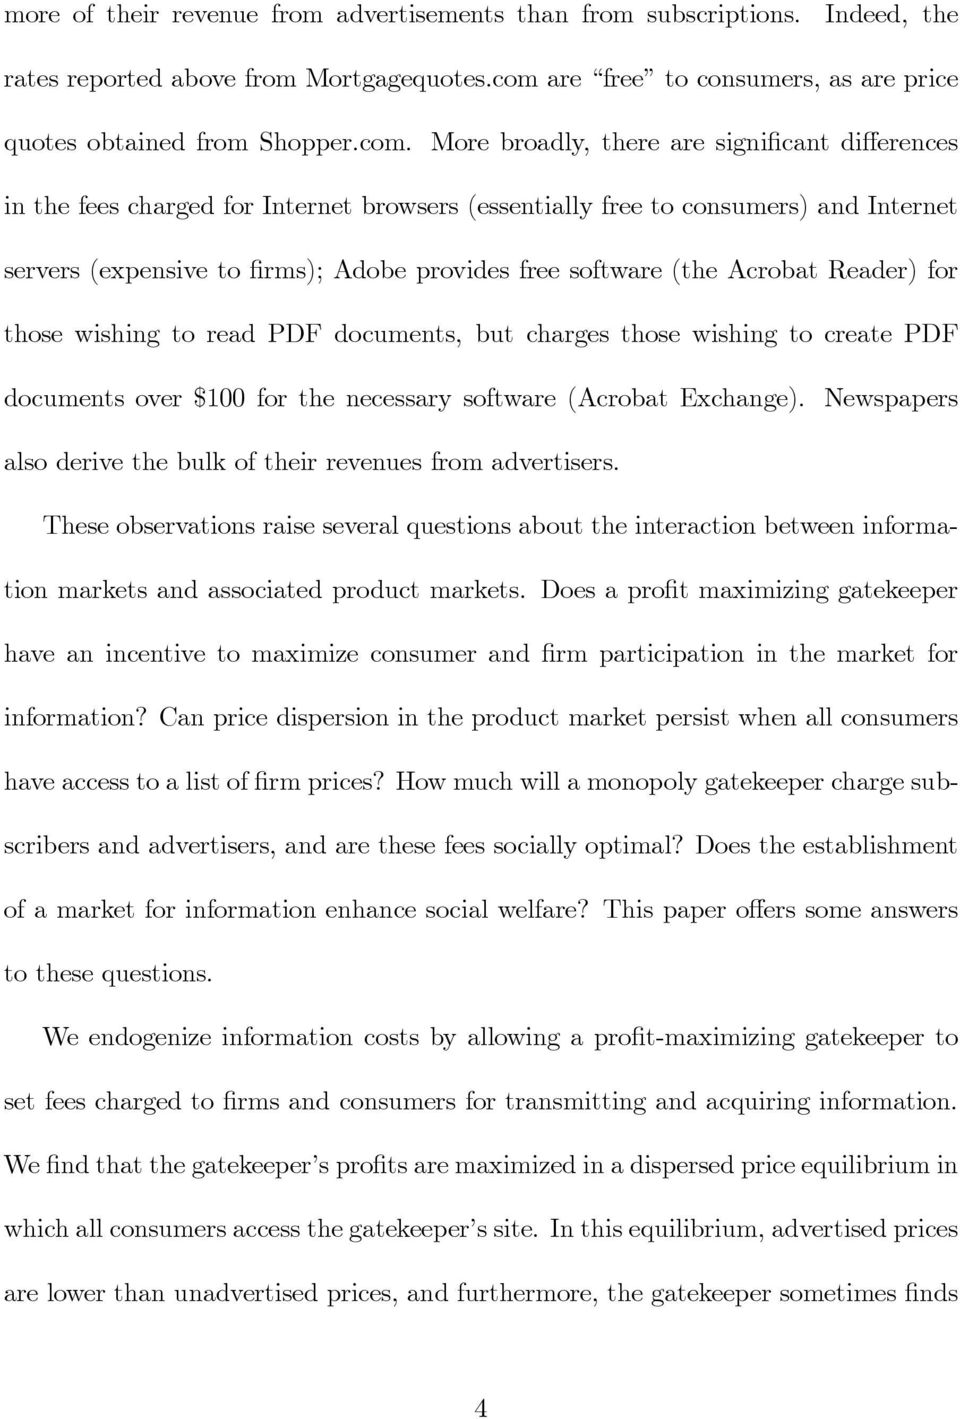 More broadly, there are signi cant di erences in the fees charged for Internet browsers (essentially free to consumers) and Internet servers (expensive to rms); Adobe provides free software (the